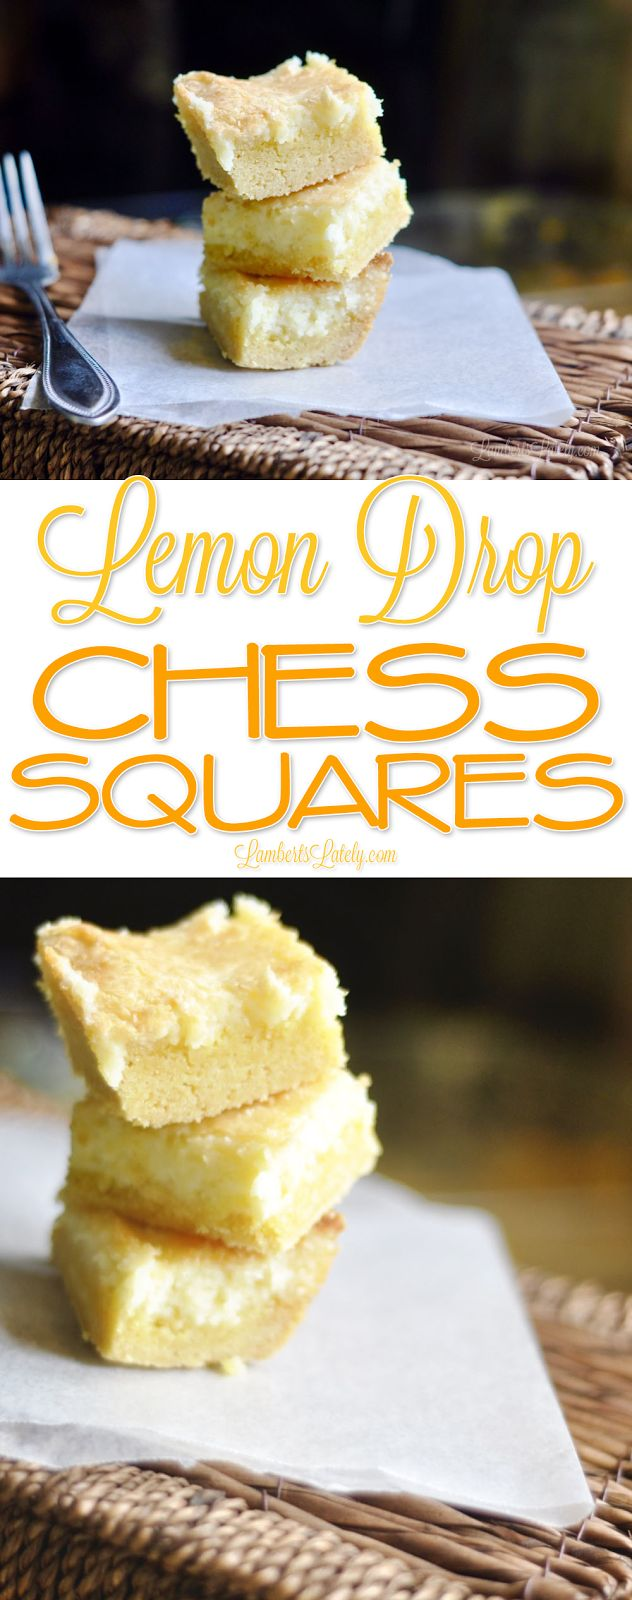 Lemon Drop Chess Squares Recipe || Chess Cake Ideas || Easy From Scratch Southern Recipe || Homemade || Cream Cheese Cake Mix